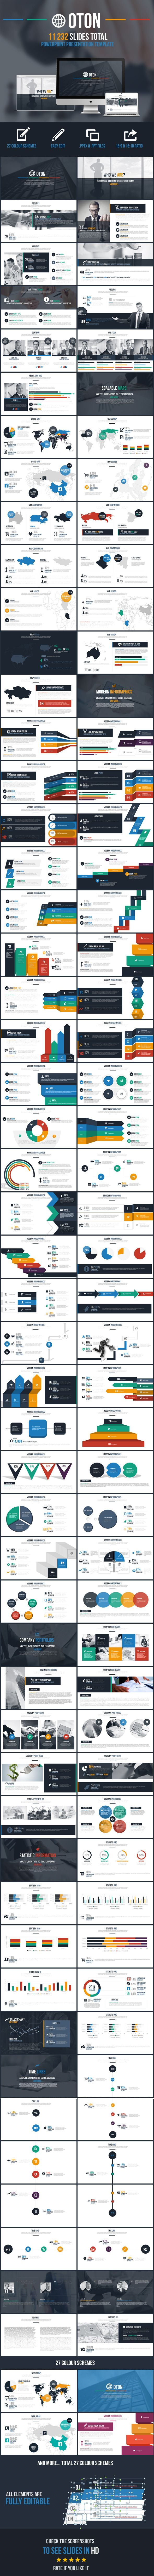 Oton Powerpoint Presentation Template #slides #design Download: http://graphicriver.net/item/oton-powerpoint-presentation-template/10949220?ref=ksioks